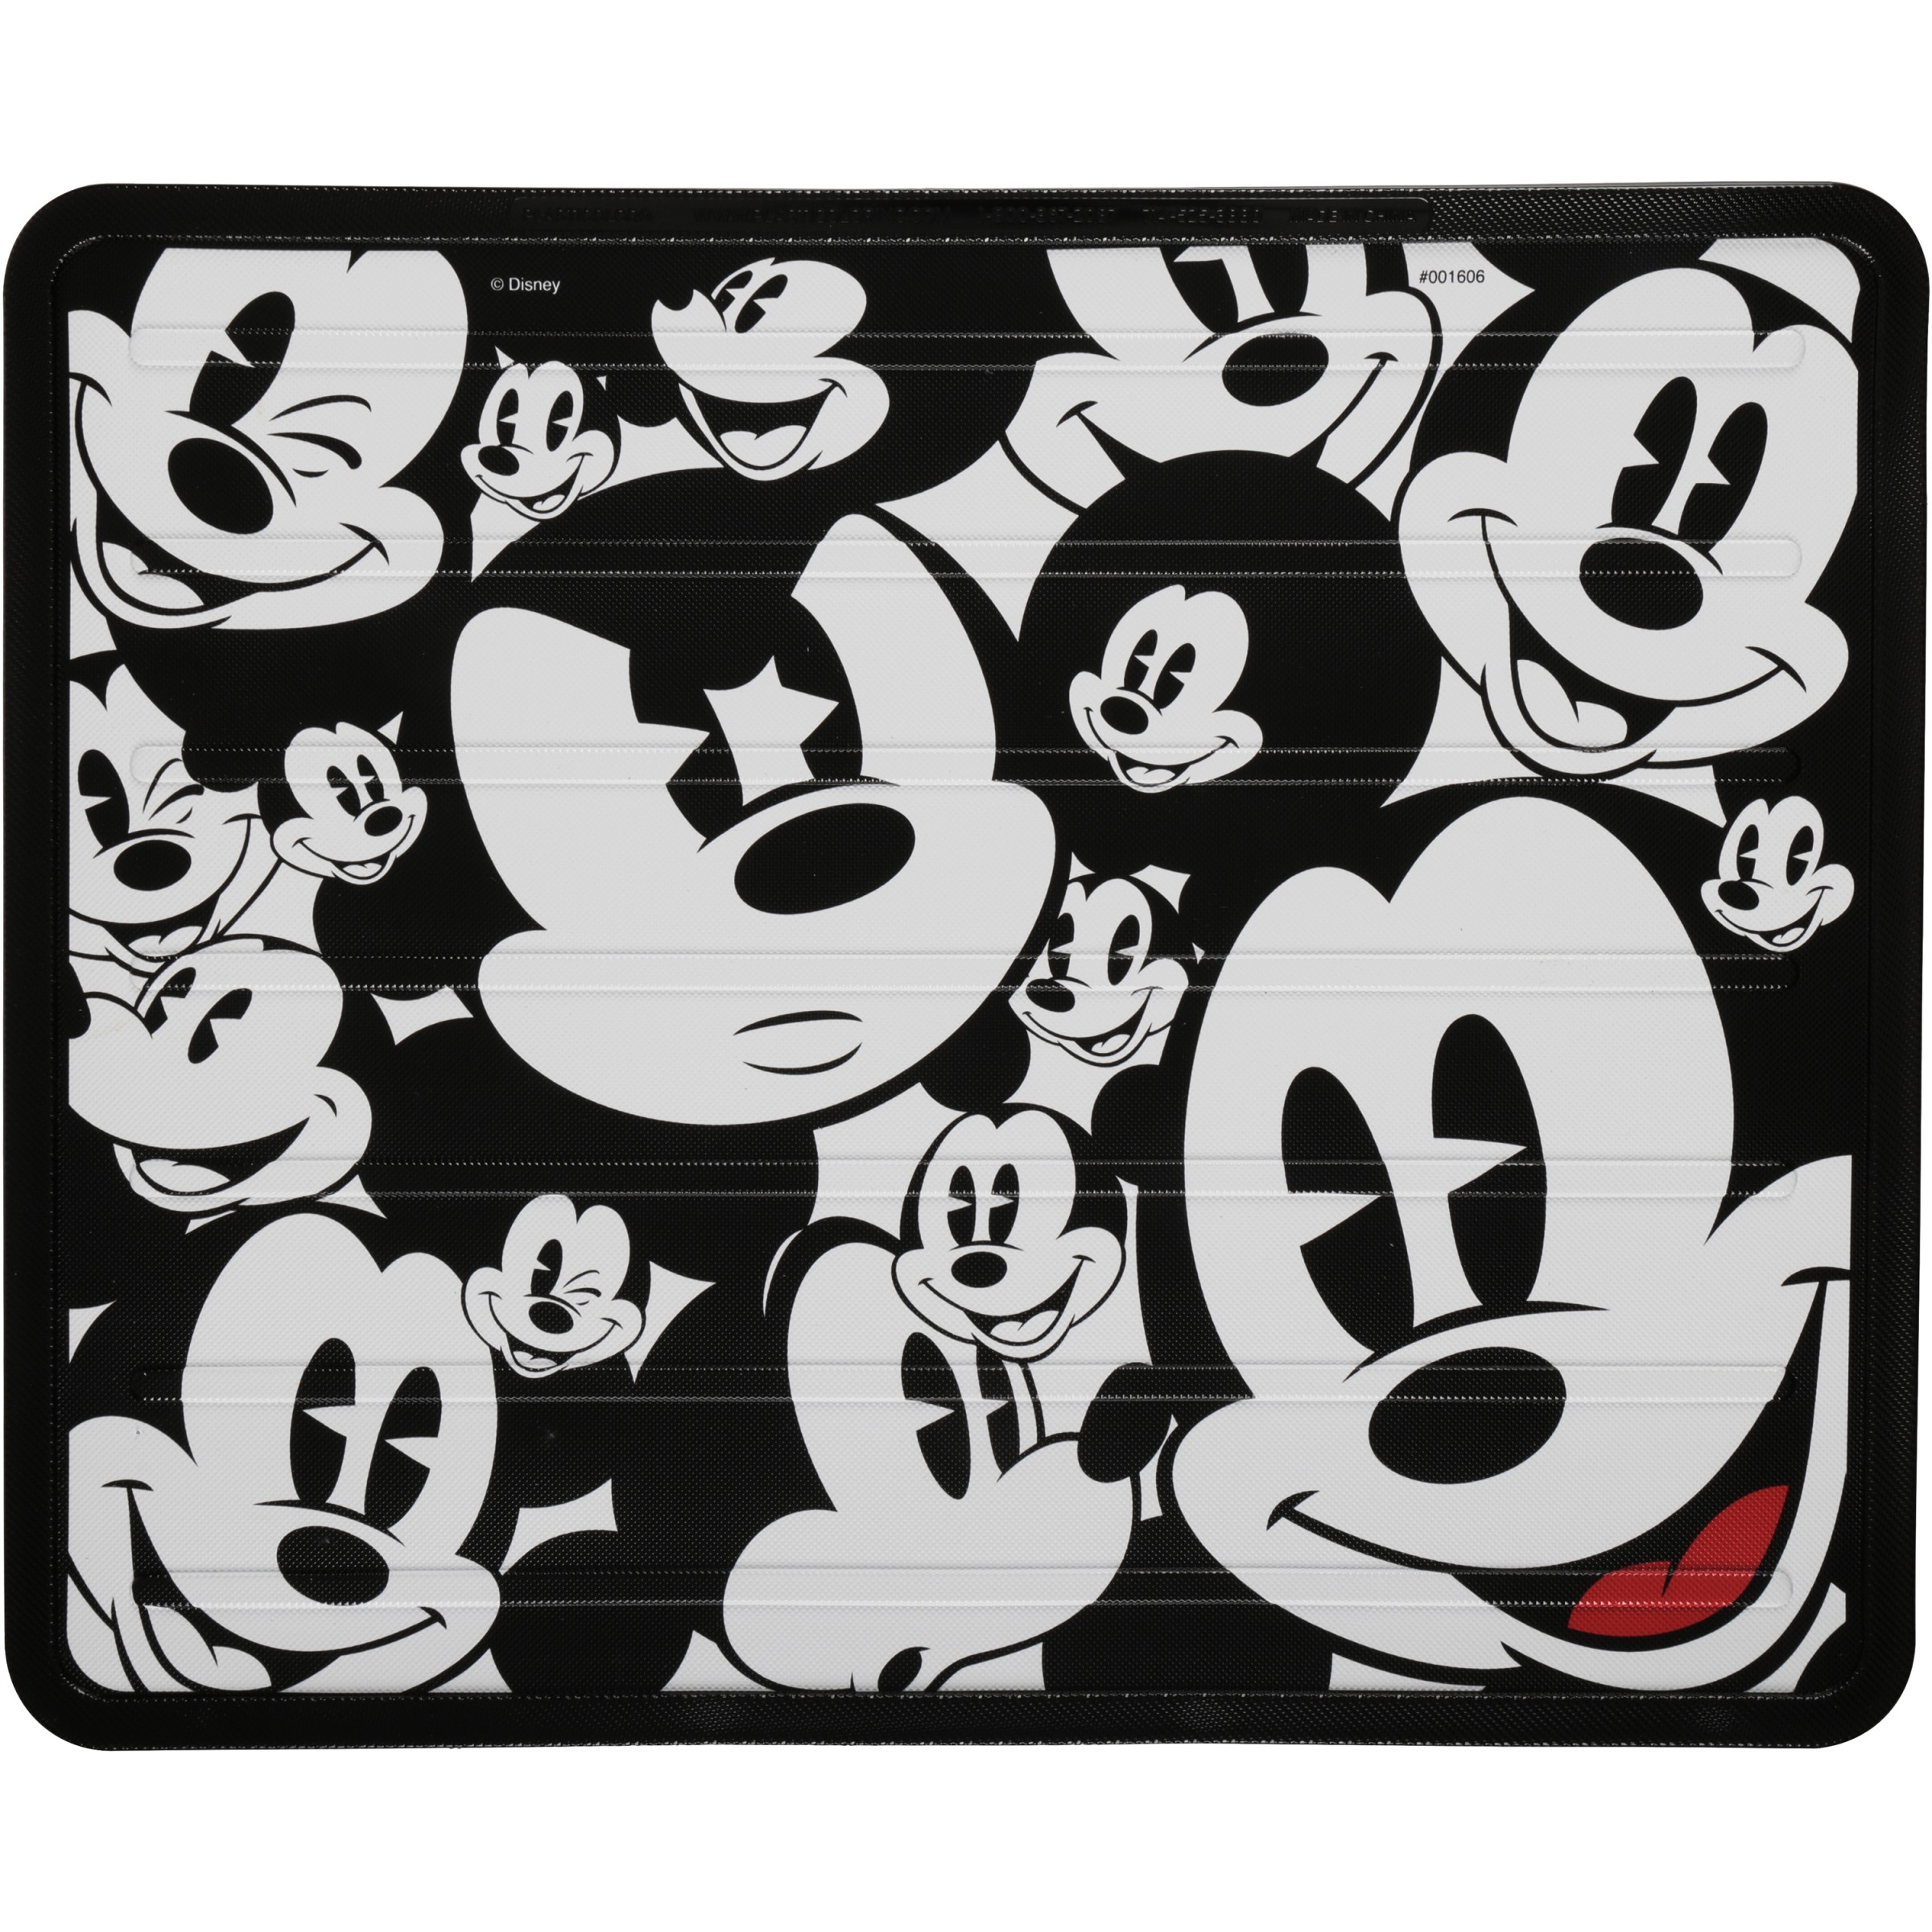 PlastiColor Disney Mickey Mouse Utility Mat